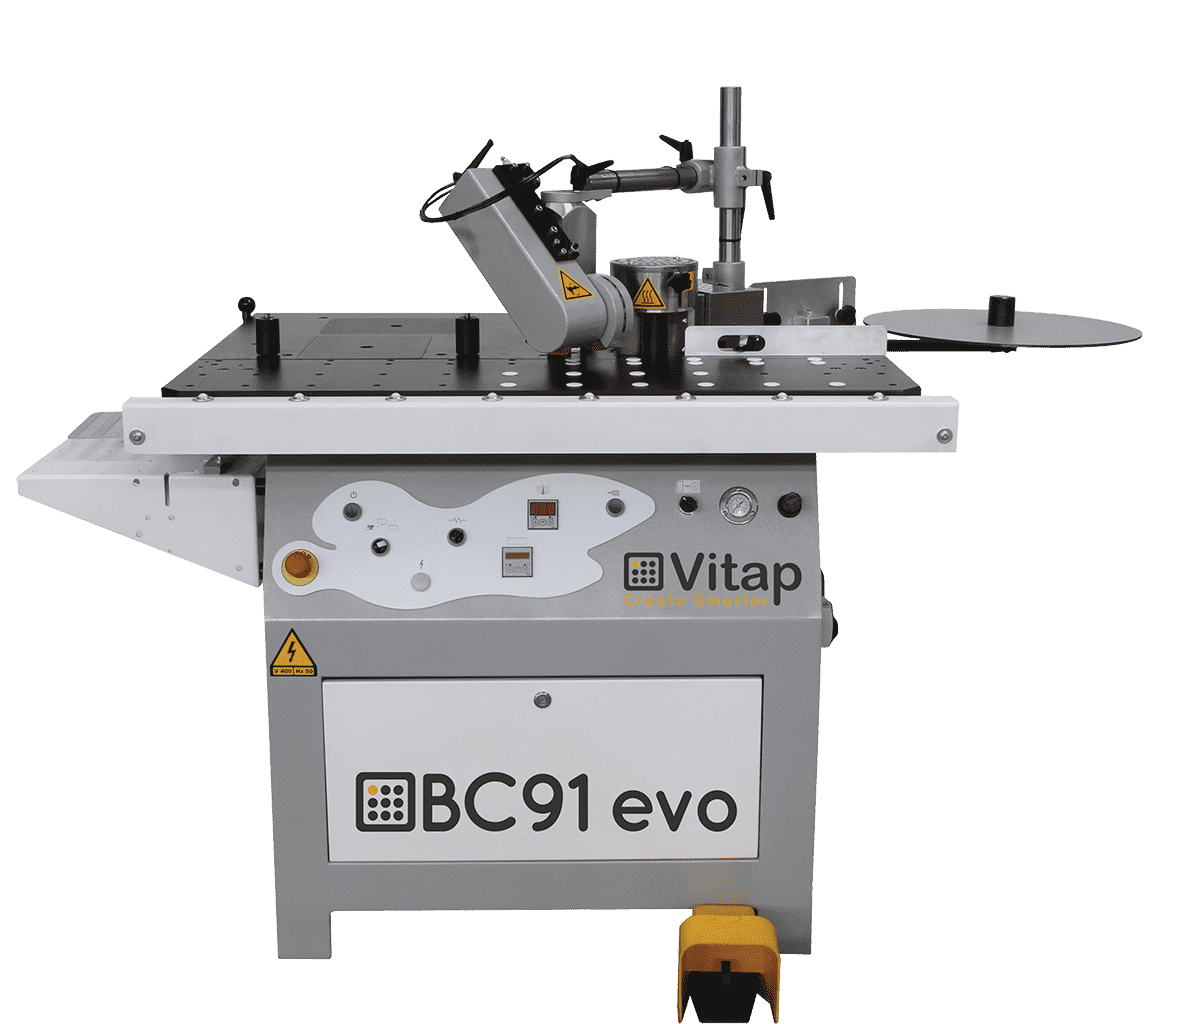 Vitap | Our wood edgebanding machines